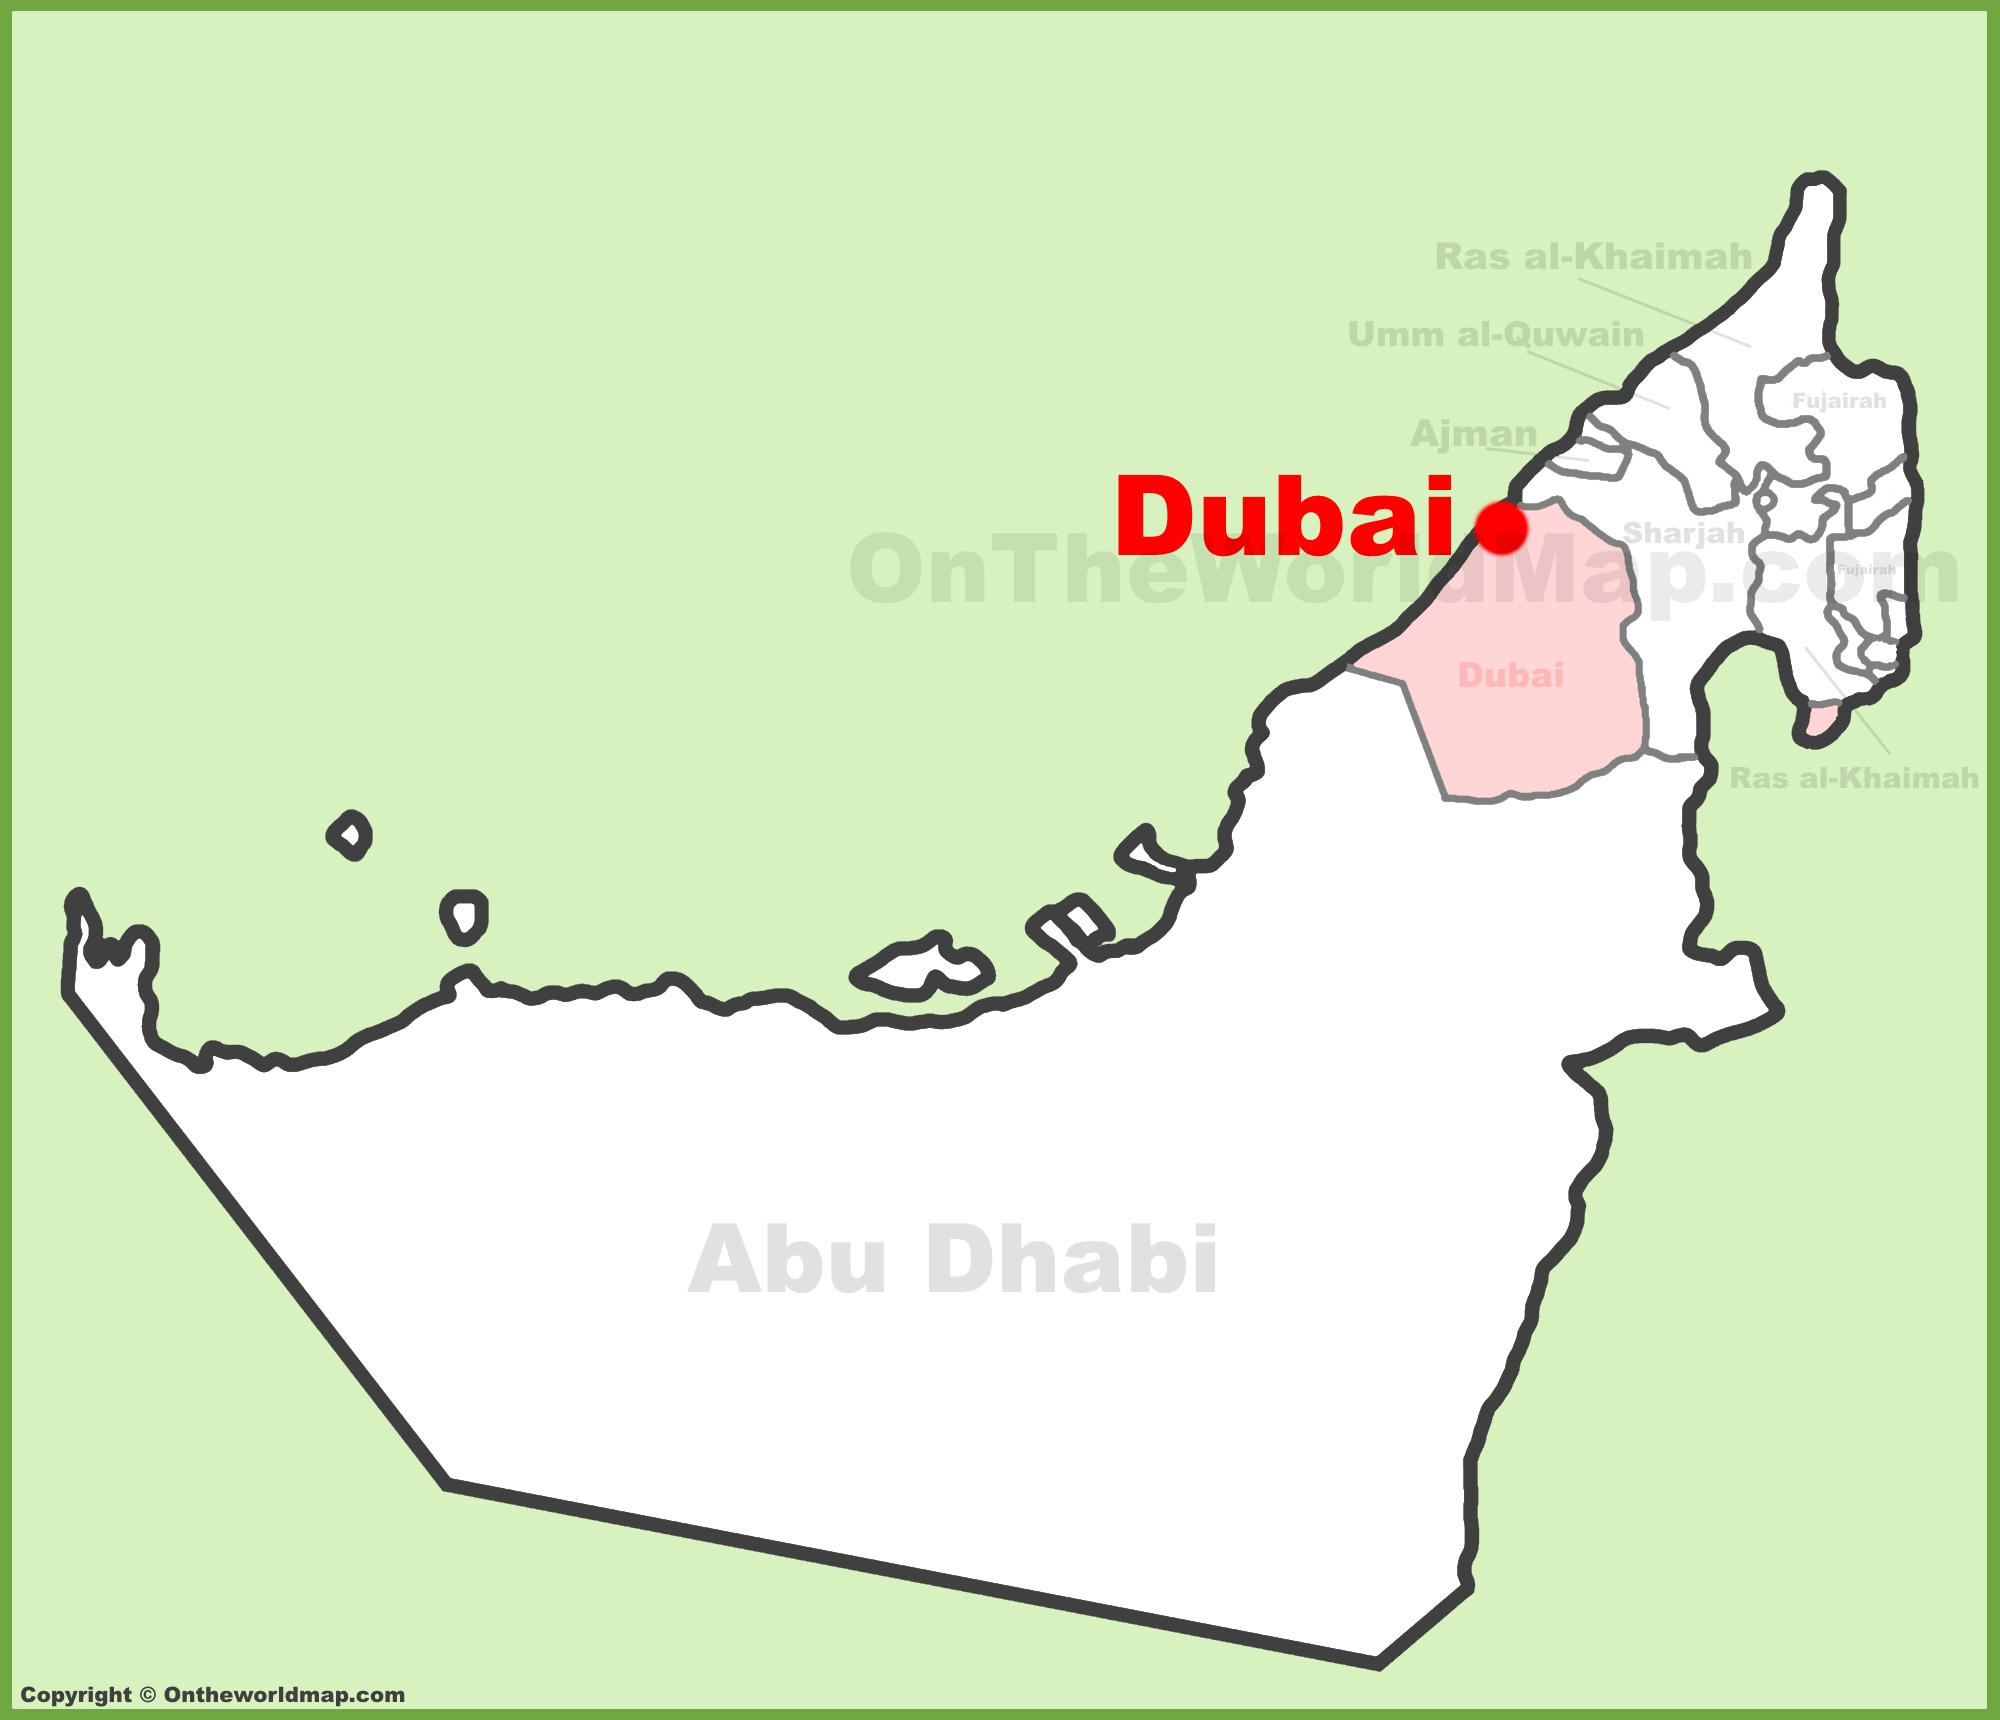 Dubai Maps | UAE | Maps of Dubai